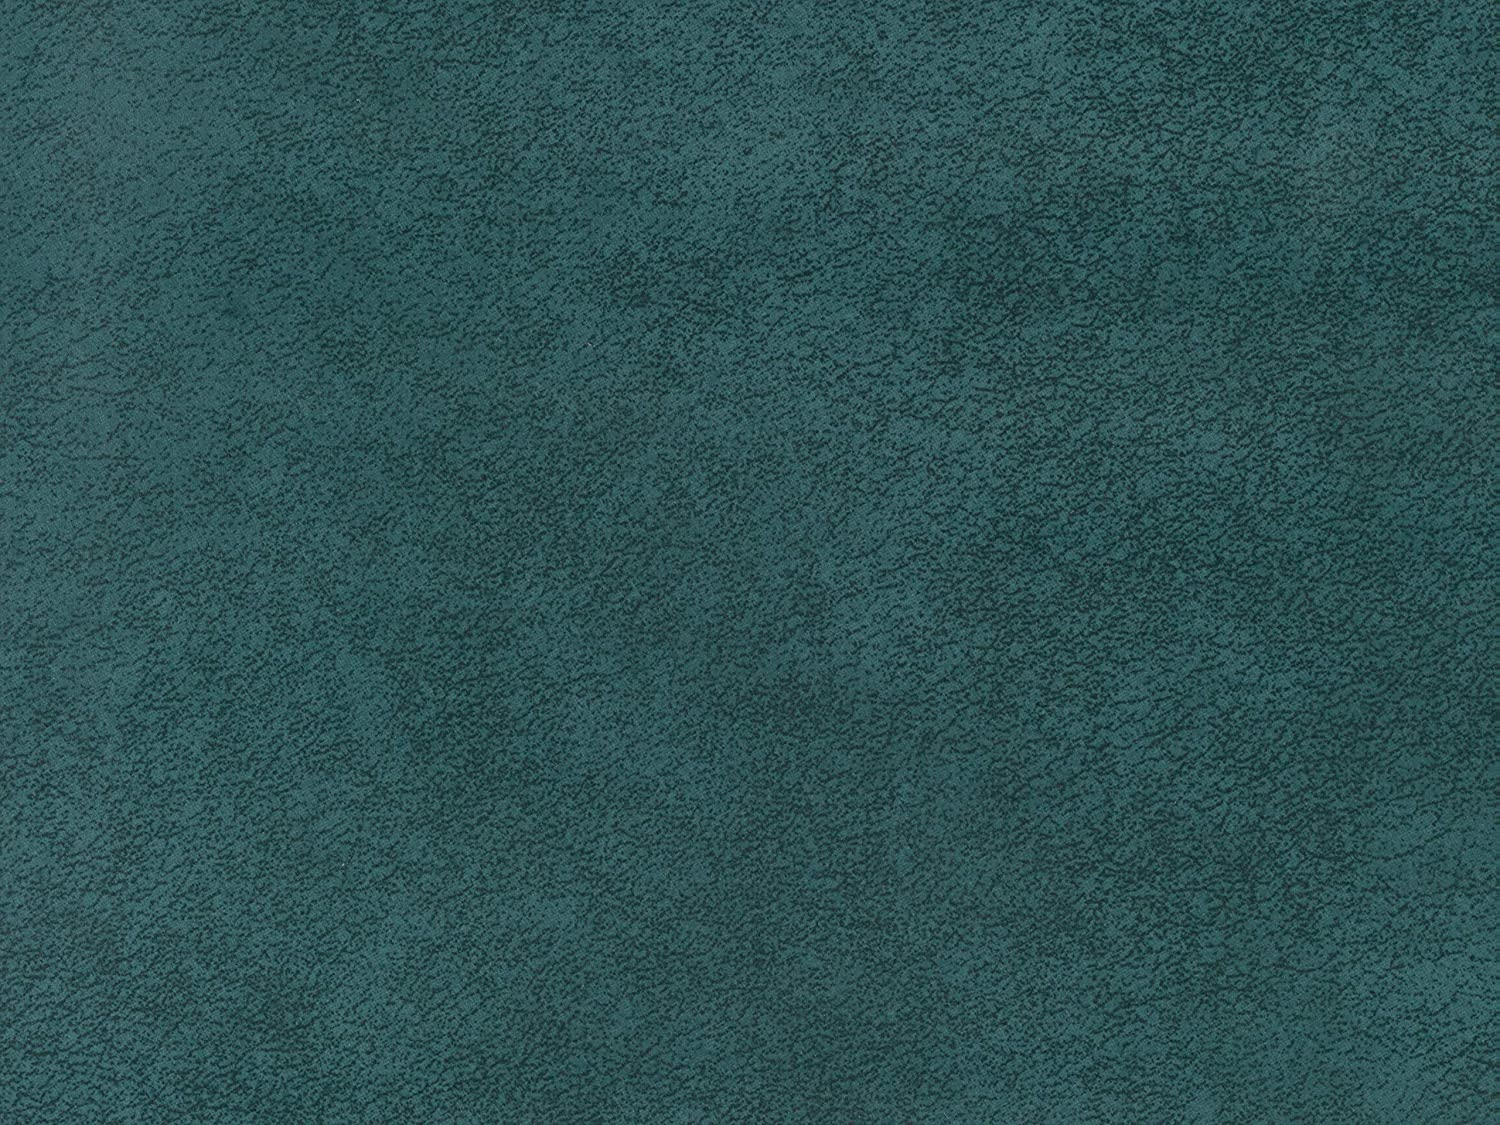 Amazon.com: Teal Aquaclean Brindle Fabric by The Yard 160 ...